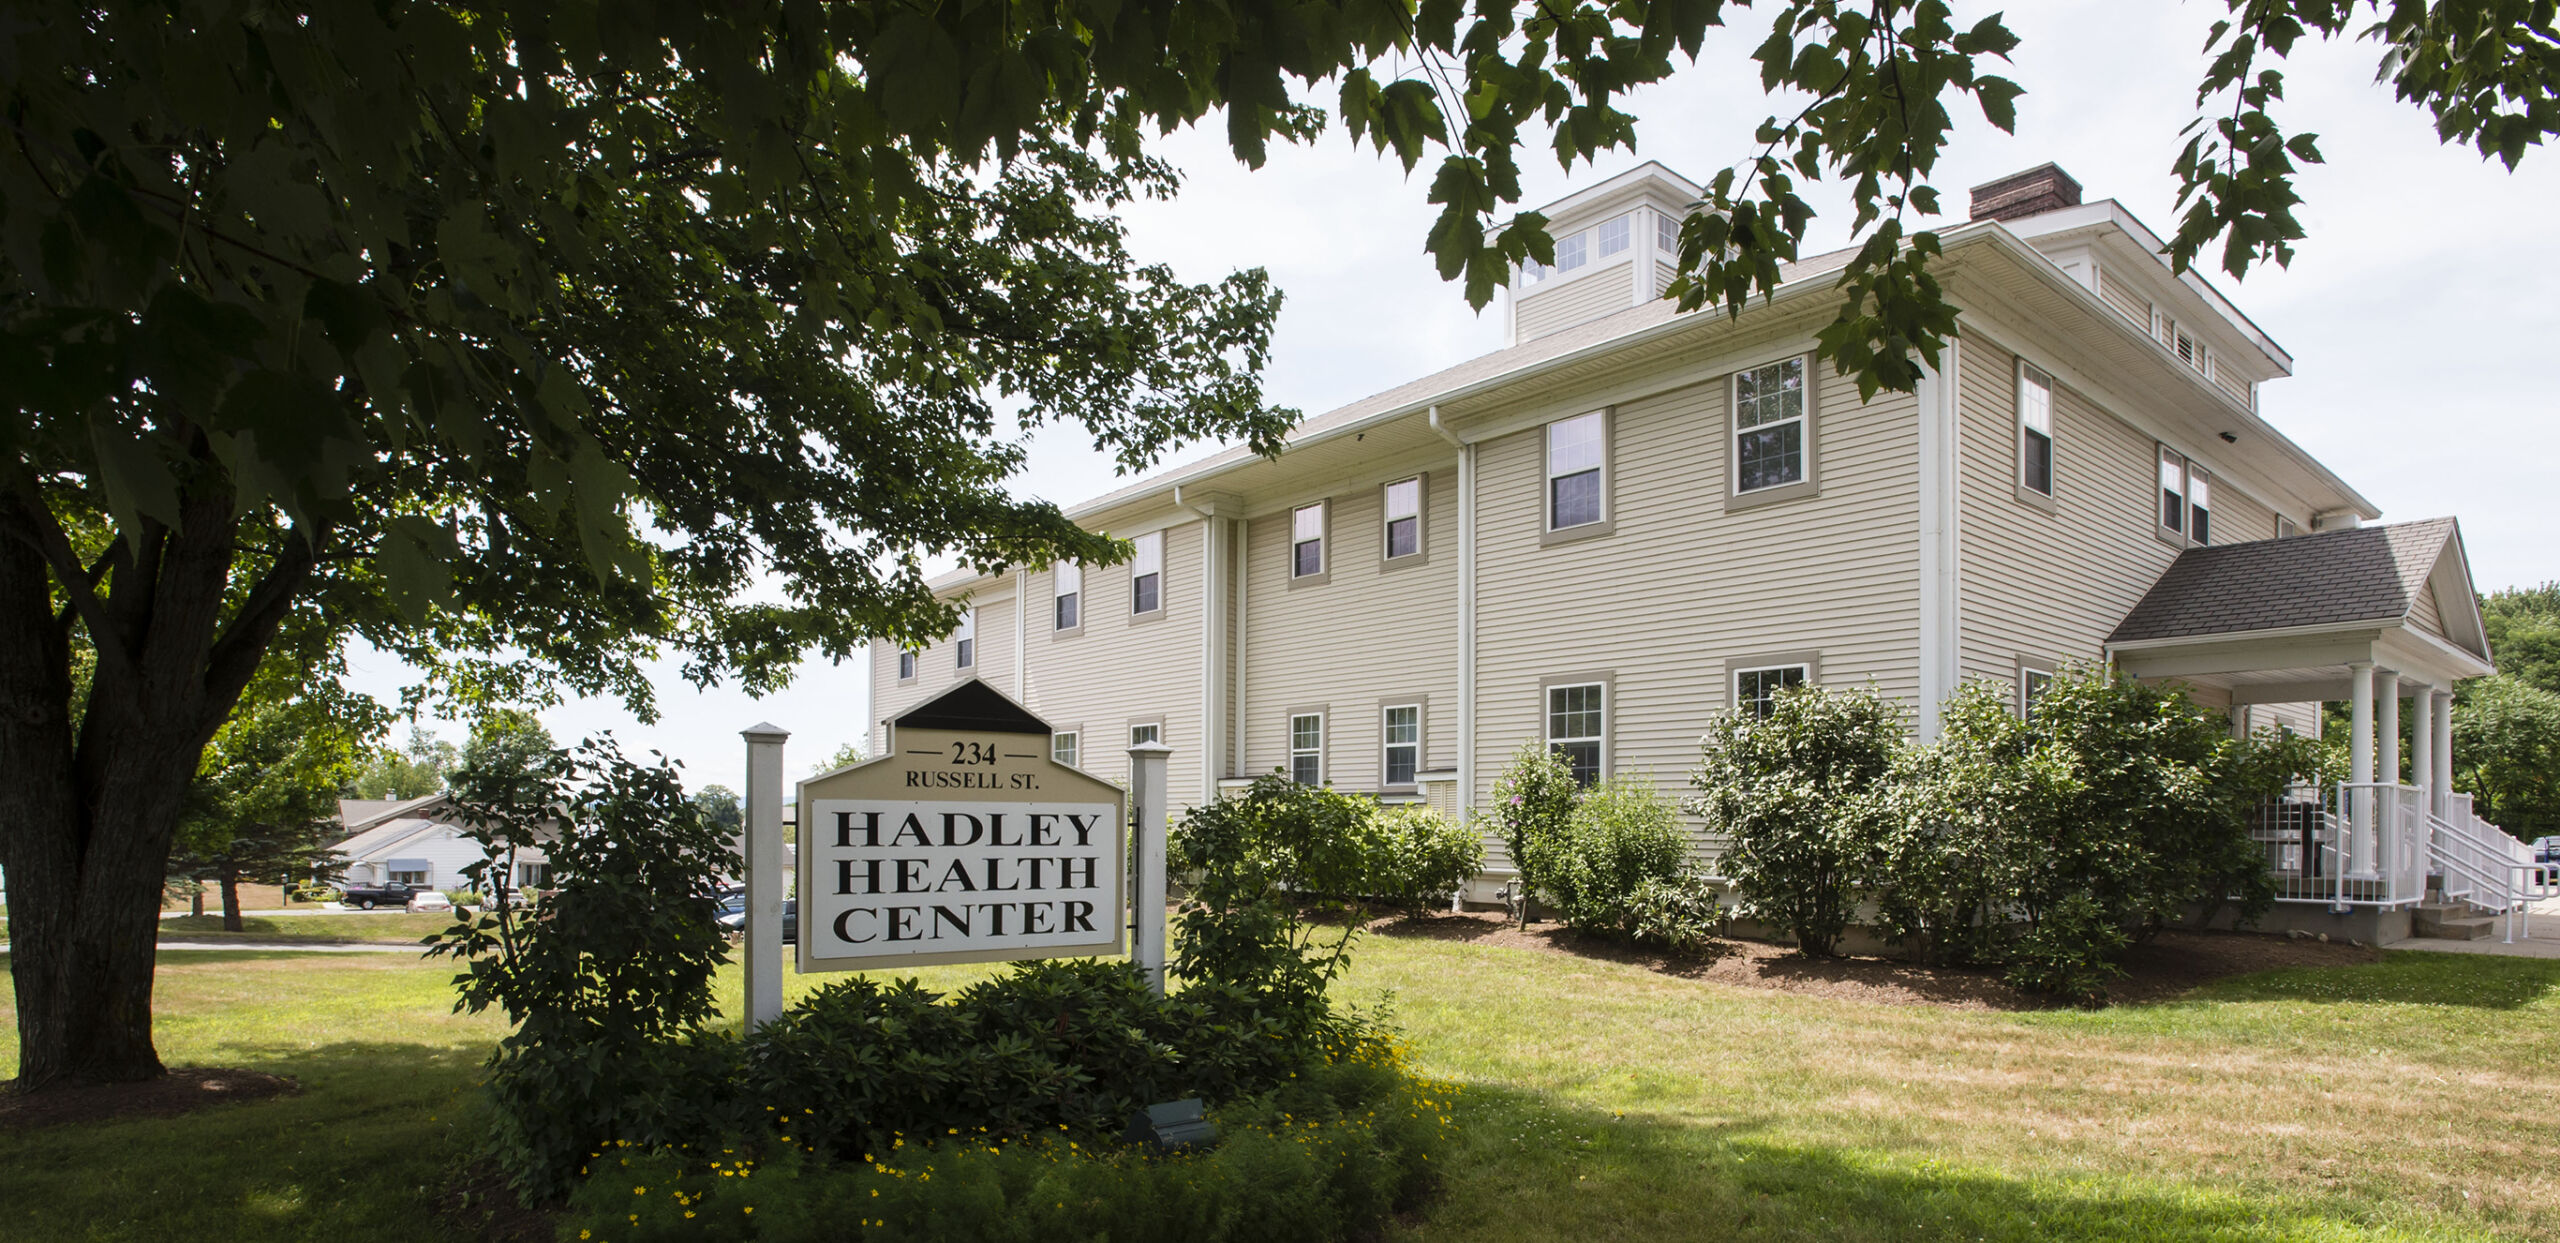 Entrance to Hadley Family Medicine building, 234 Russell Street, Suite 7, Hadley, MA 01035.